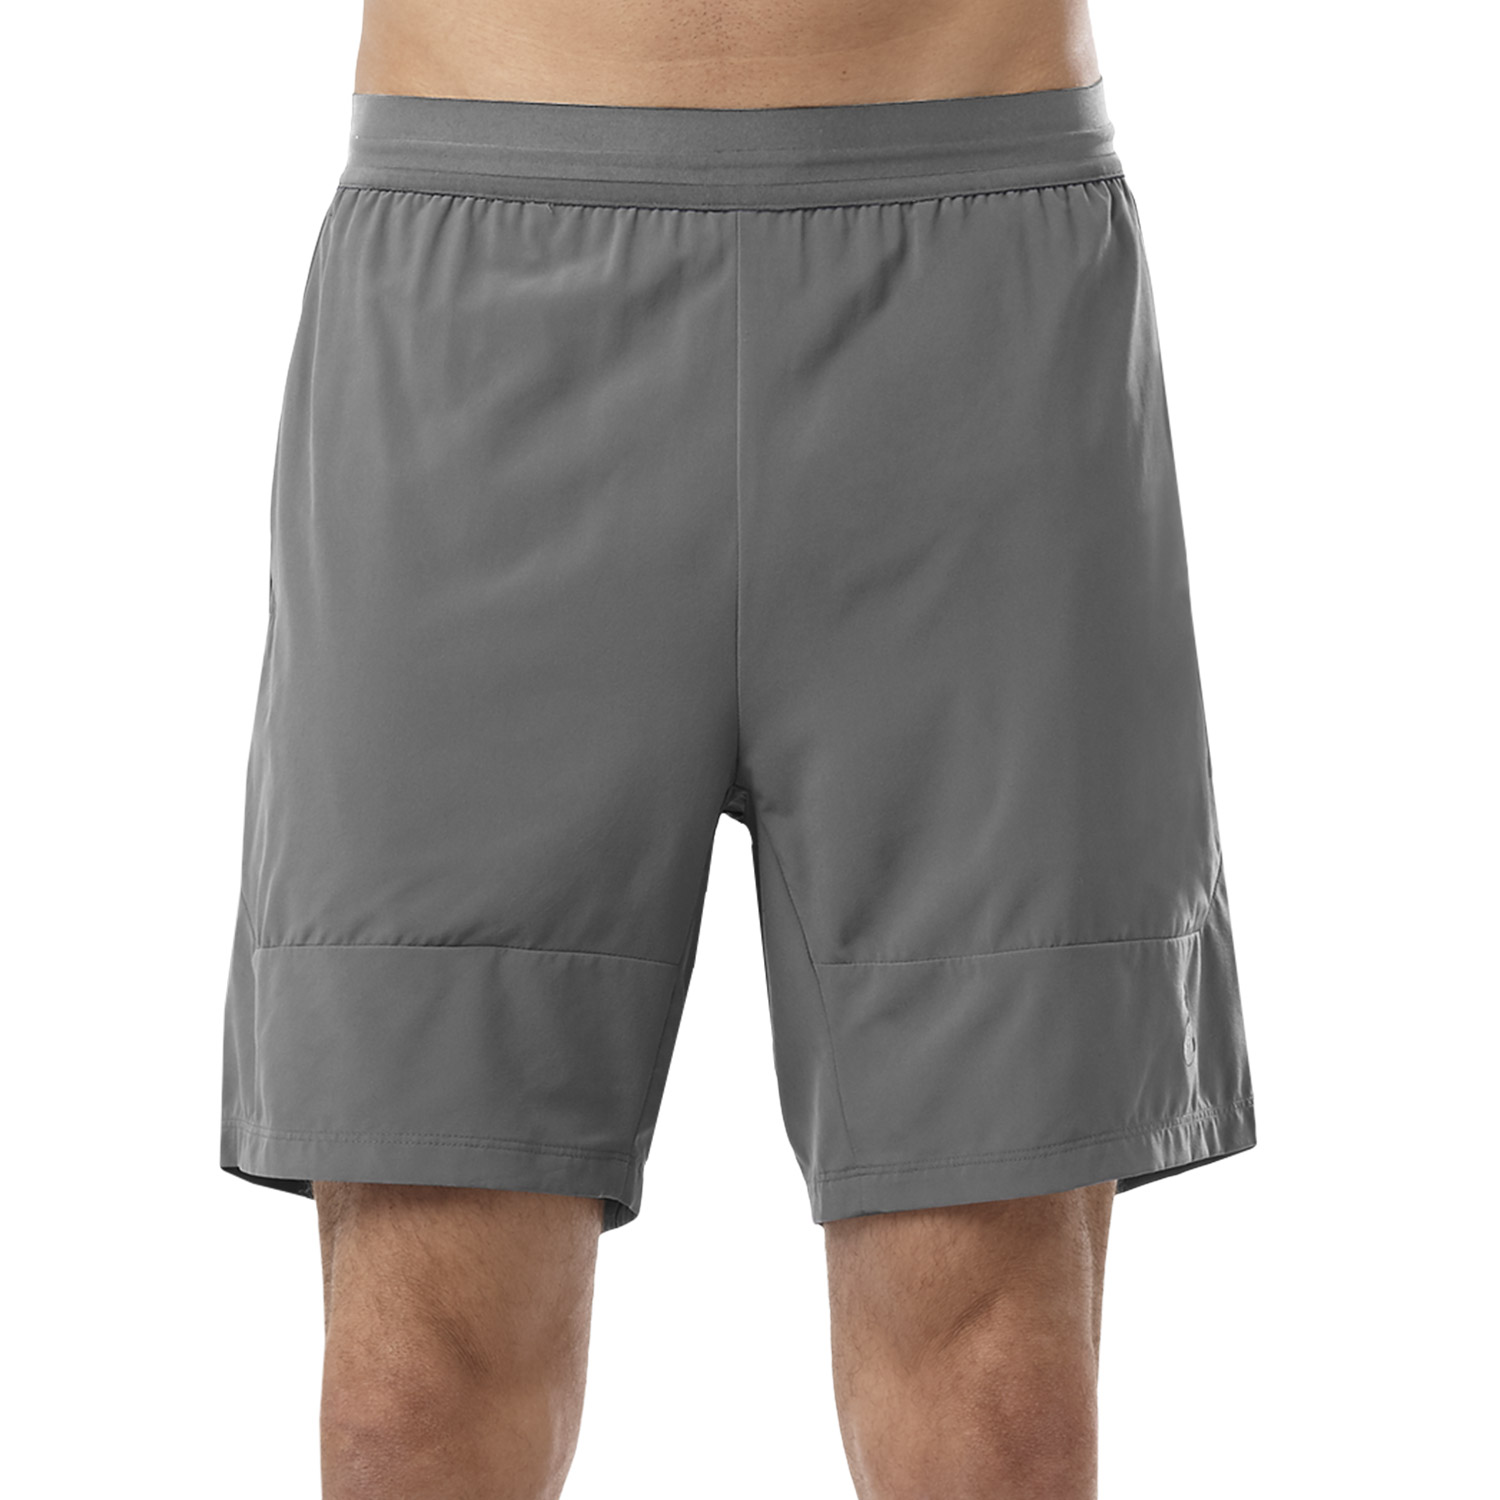 Asics Athlete 7in Shorts